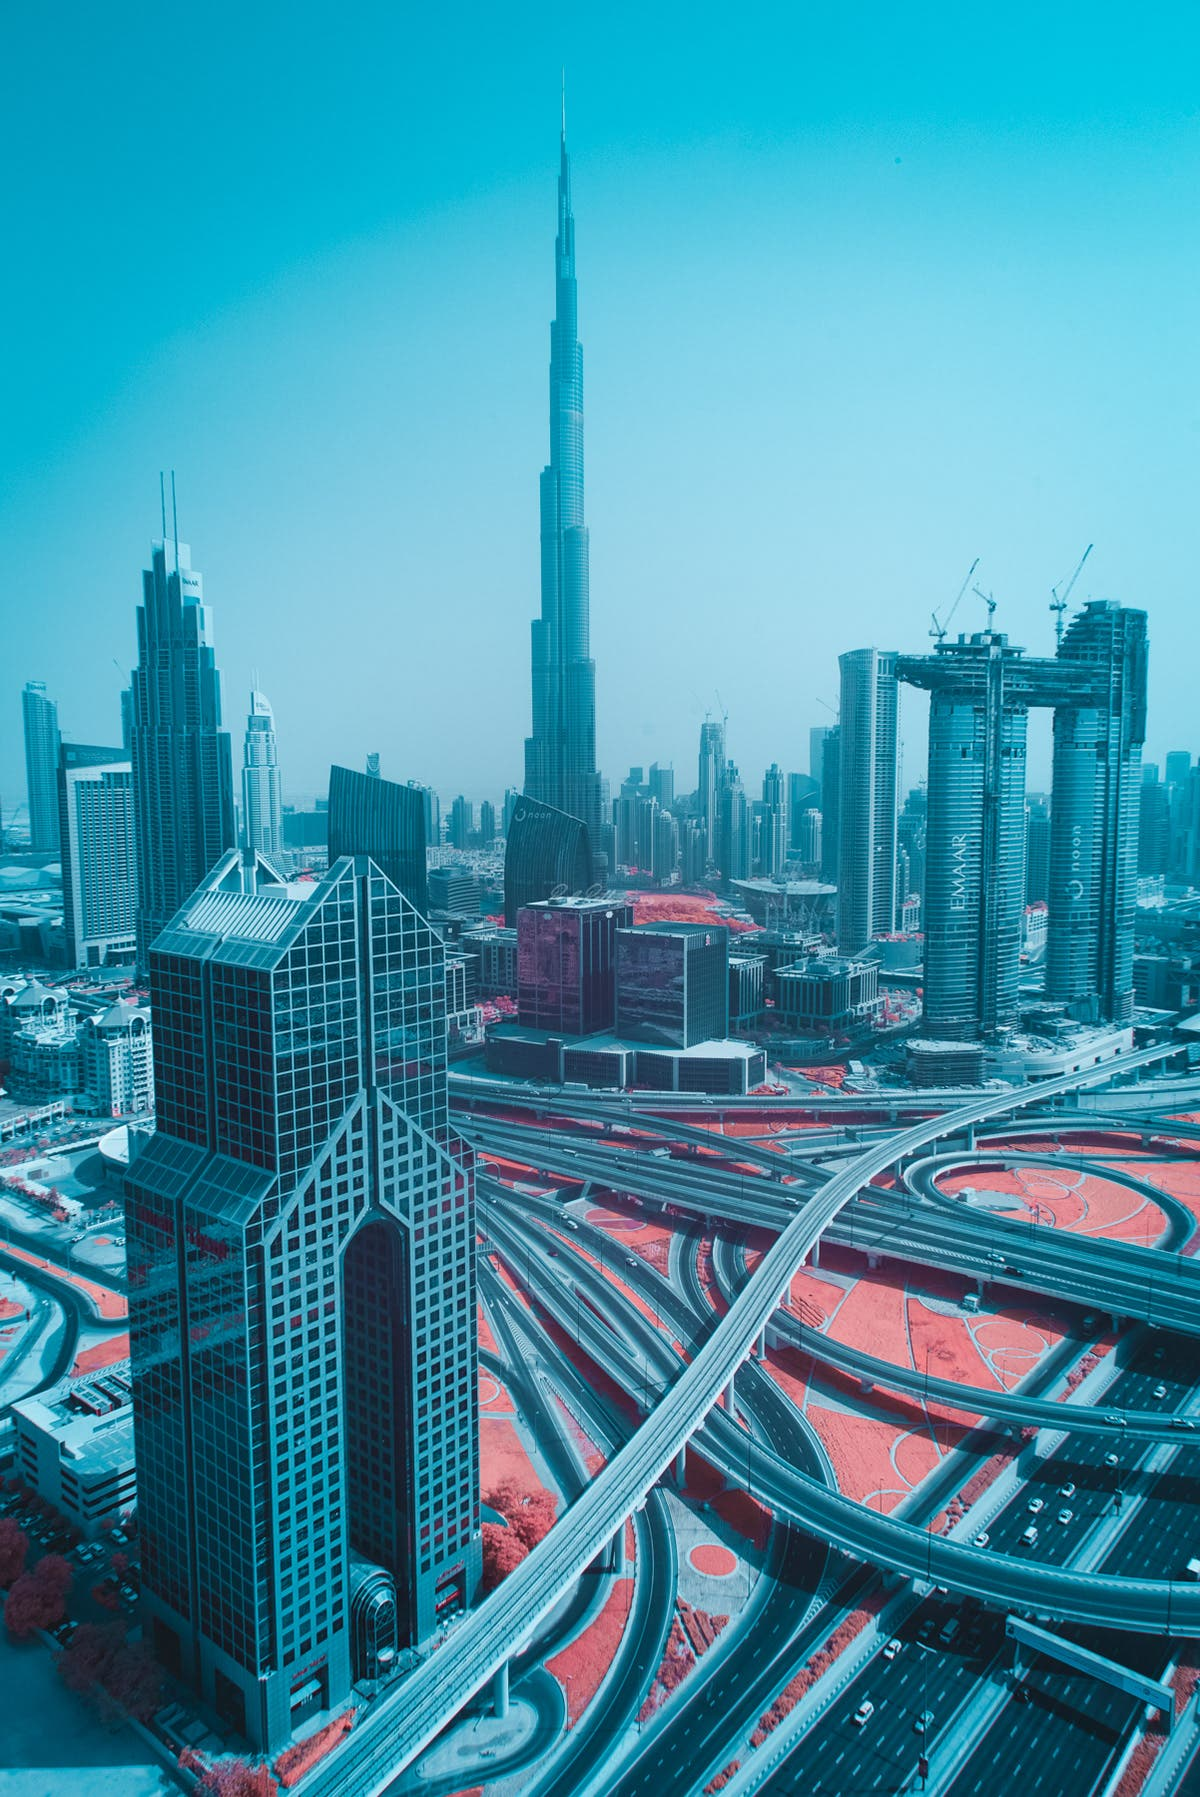 Paolo Pettigiani Reimagines Dubai as a Surreal Infrared Metropolis